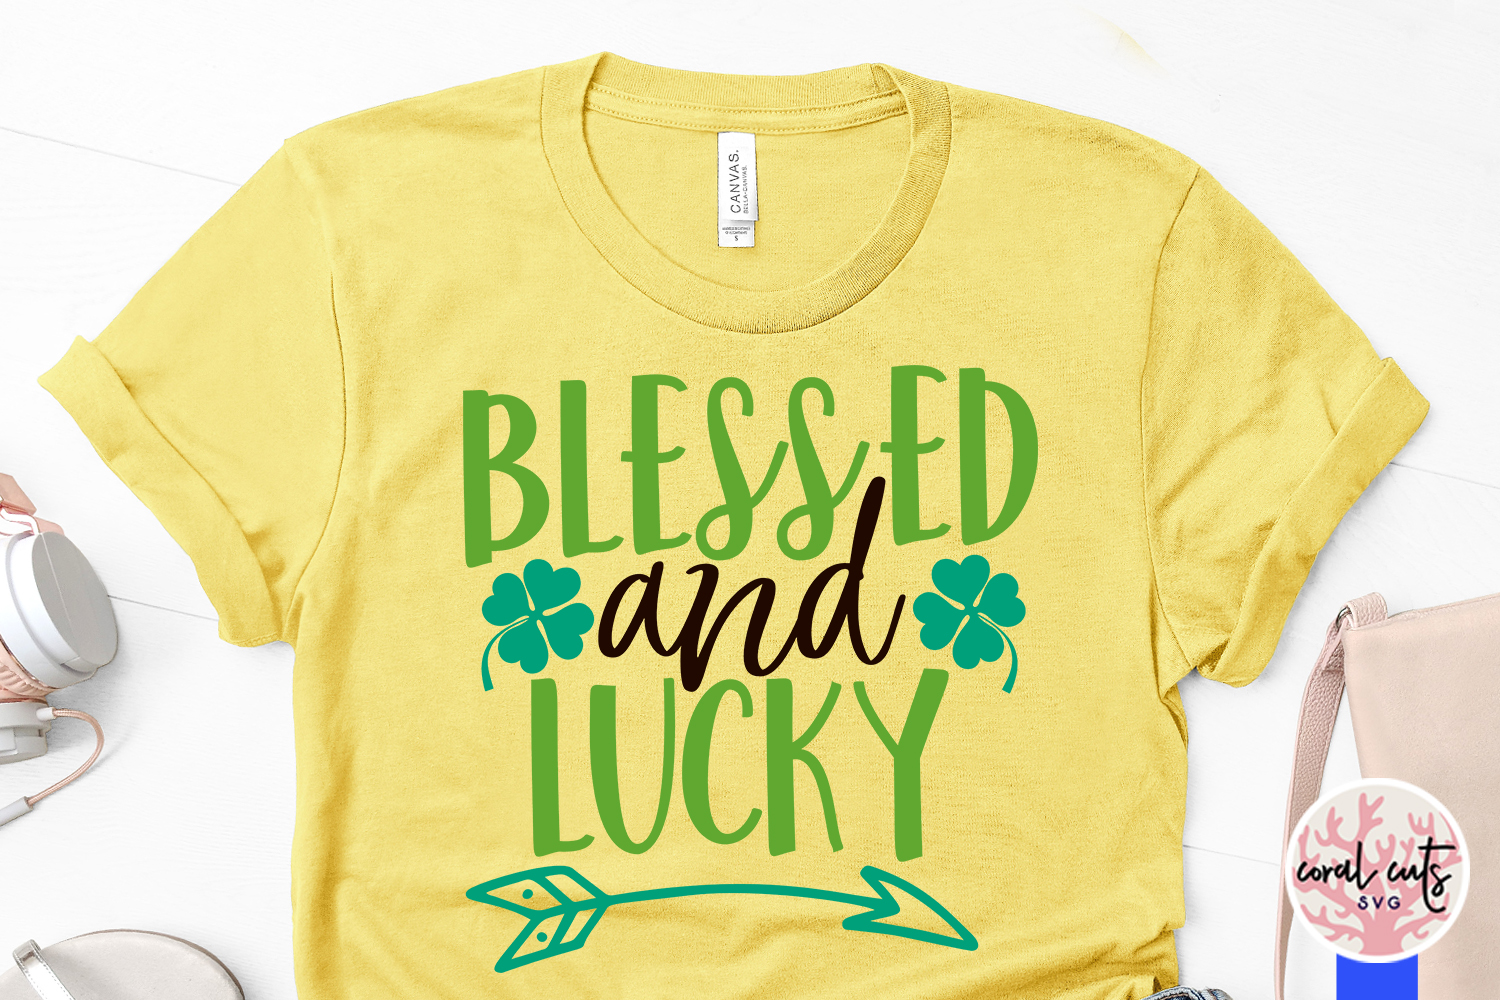 Blessed and lucky - St. Patrick's Day SVG EPS DXF PNG example image 3